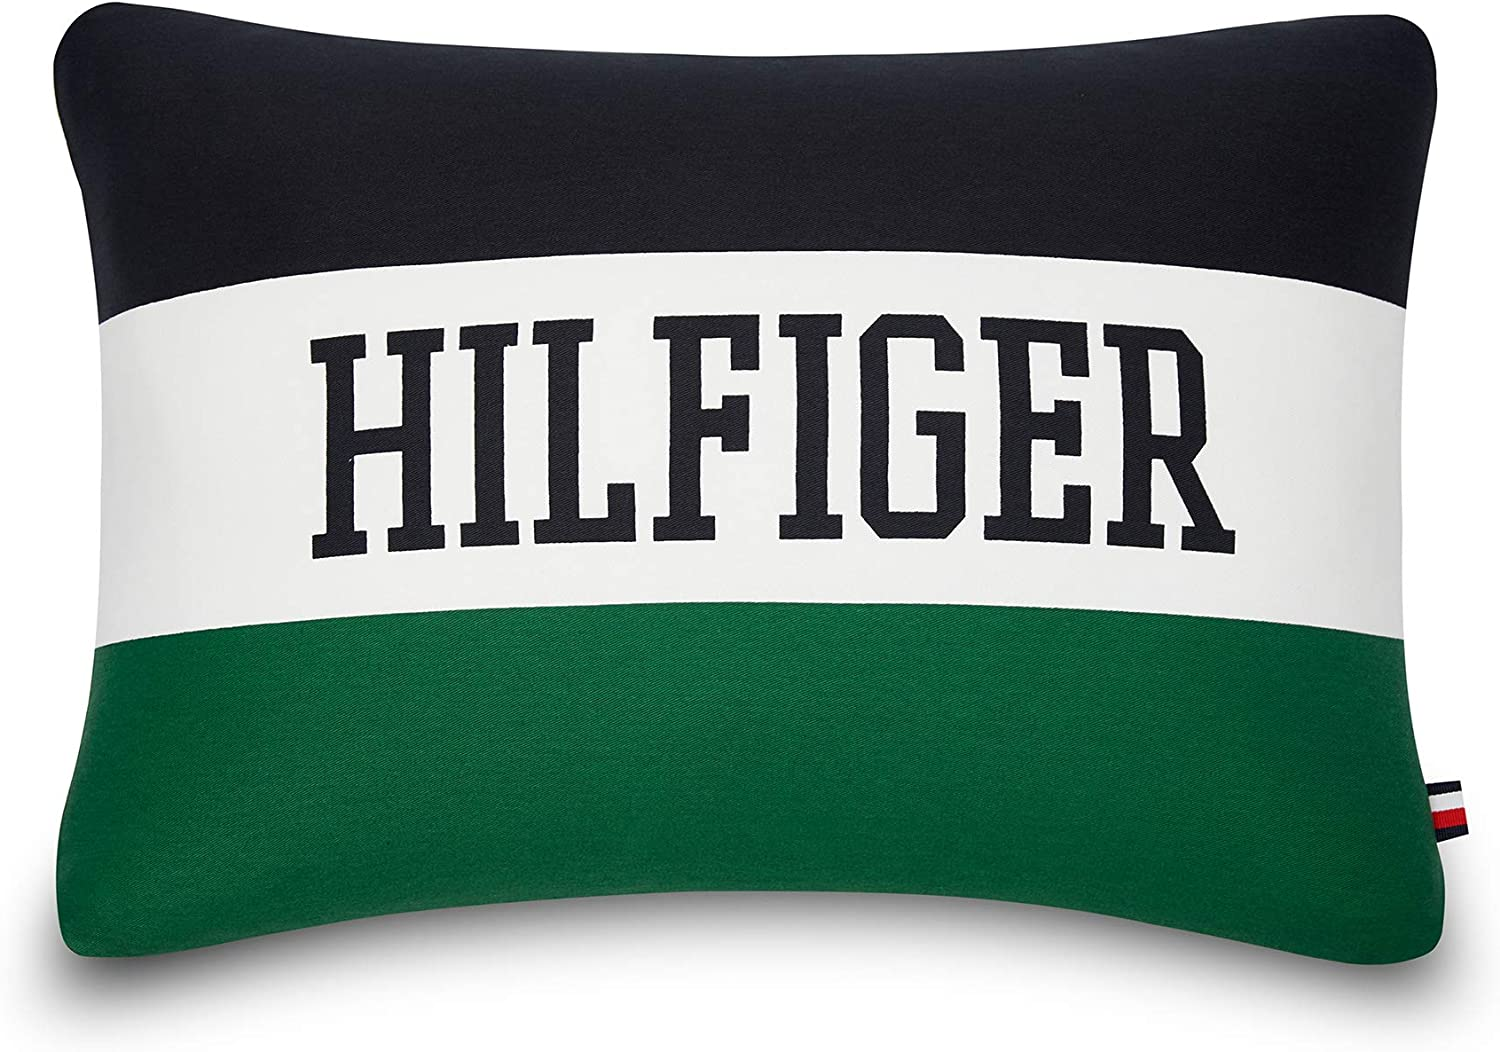 Tommy Hilfiger Collegiate Decorative Pillow, 15x20 inch, Green